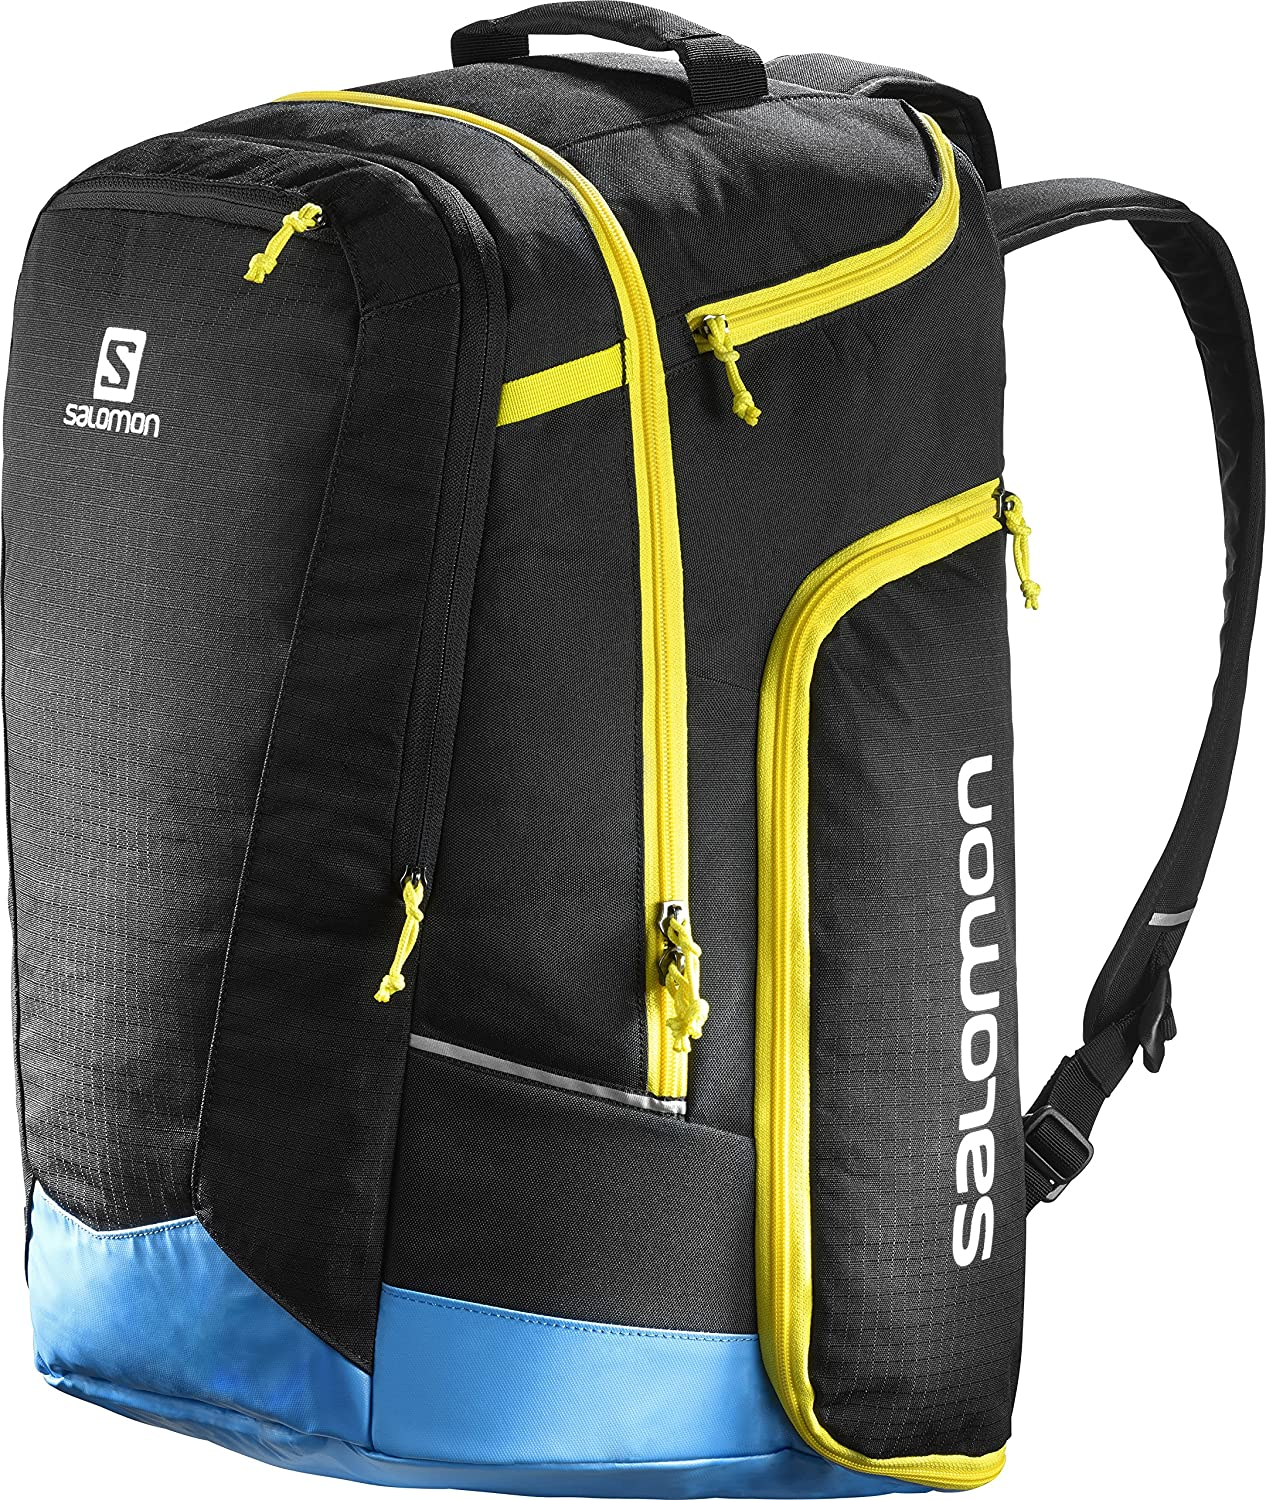 SALOMON Bolsa para Equipo de esquí, 50L, Extend GO-TO-Snow Gear Bag, Negro/Azul, l38261800